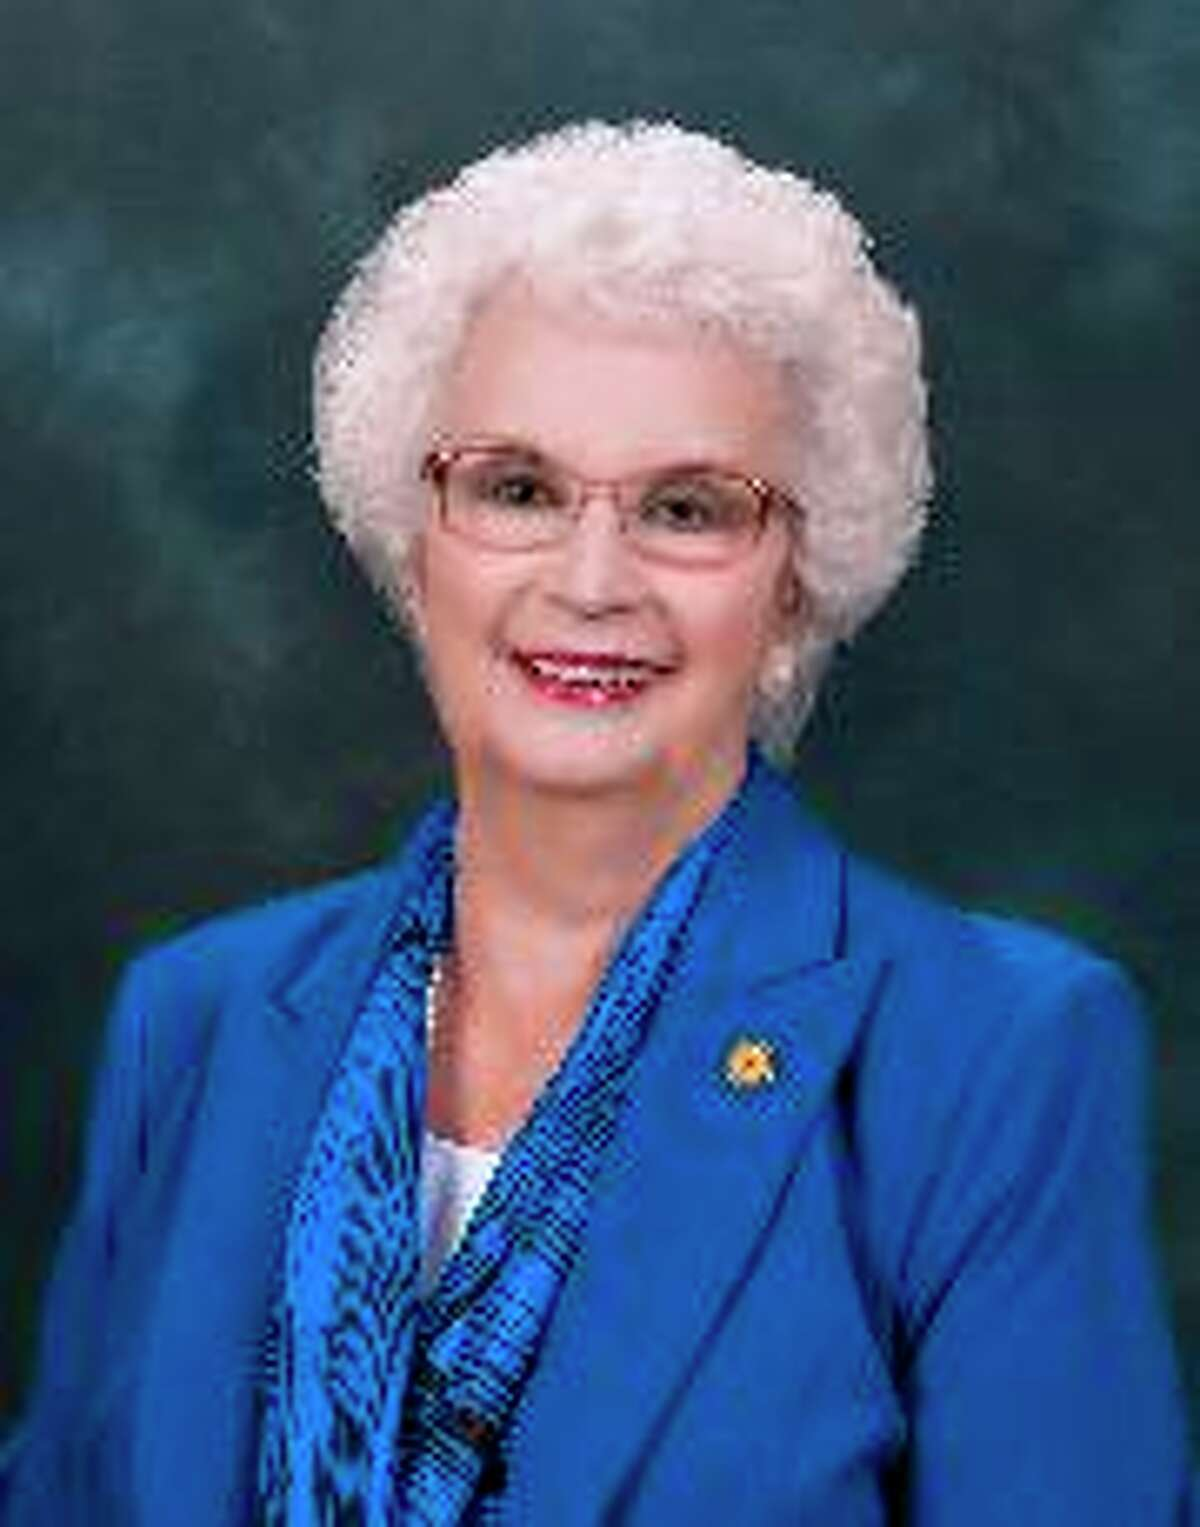 Nelda Sullivan is seeking re-election to Position 3 on the Pasadena ISD school board in the May 1 election.